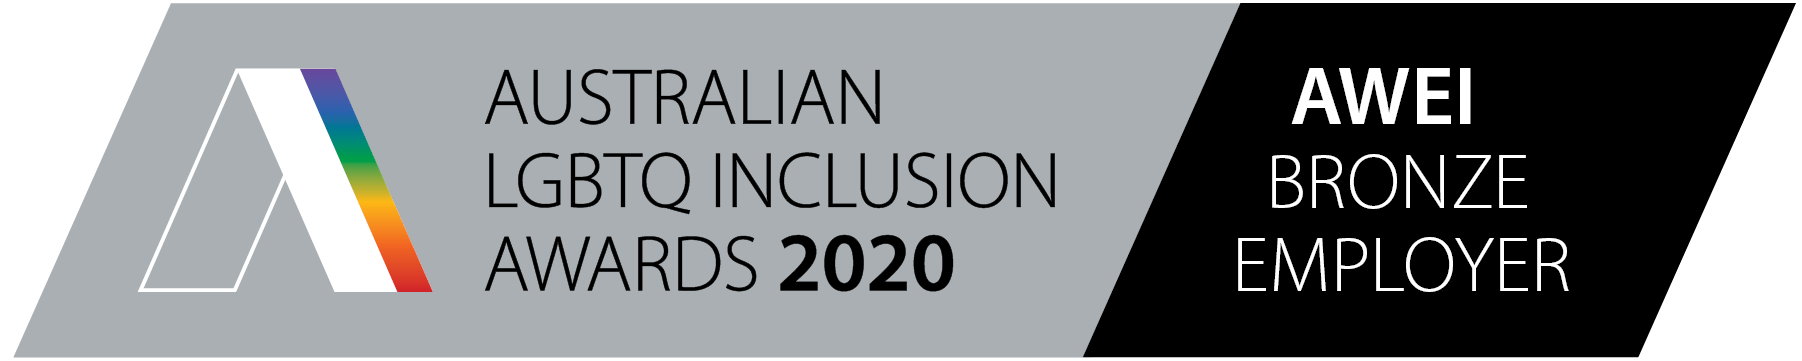 Australian LGBTQ inclusions awards 2020 AWEI Bronze employer badge